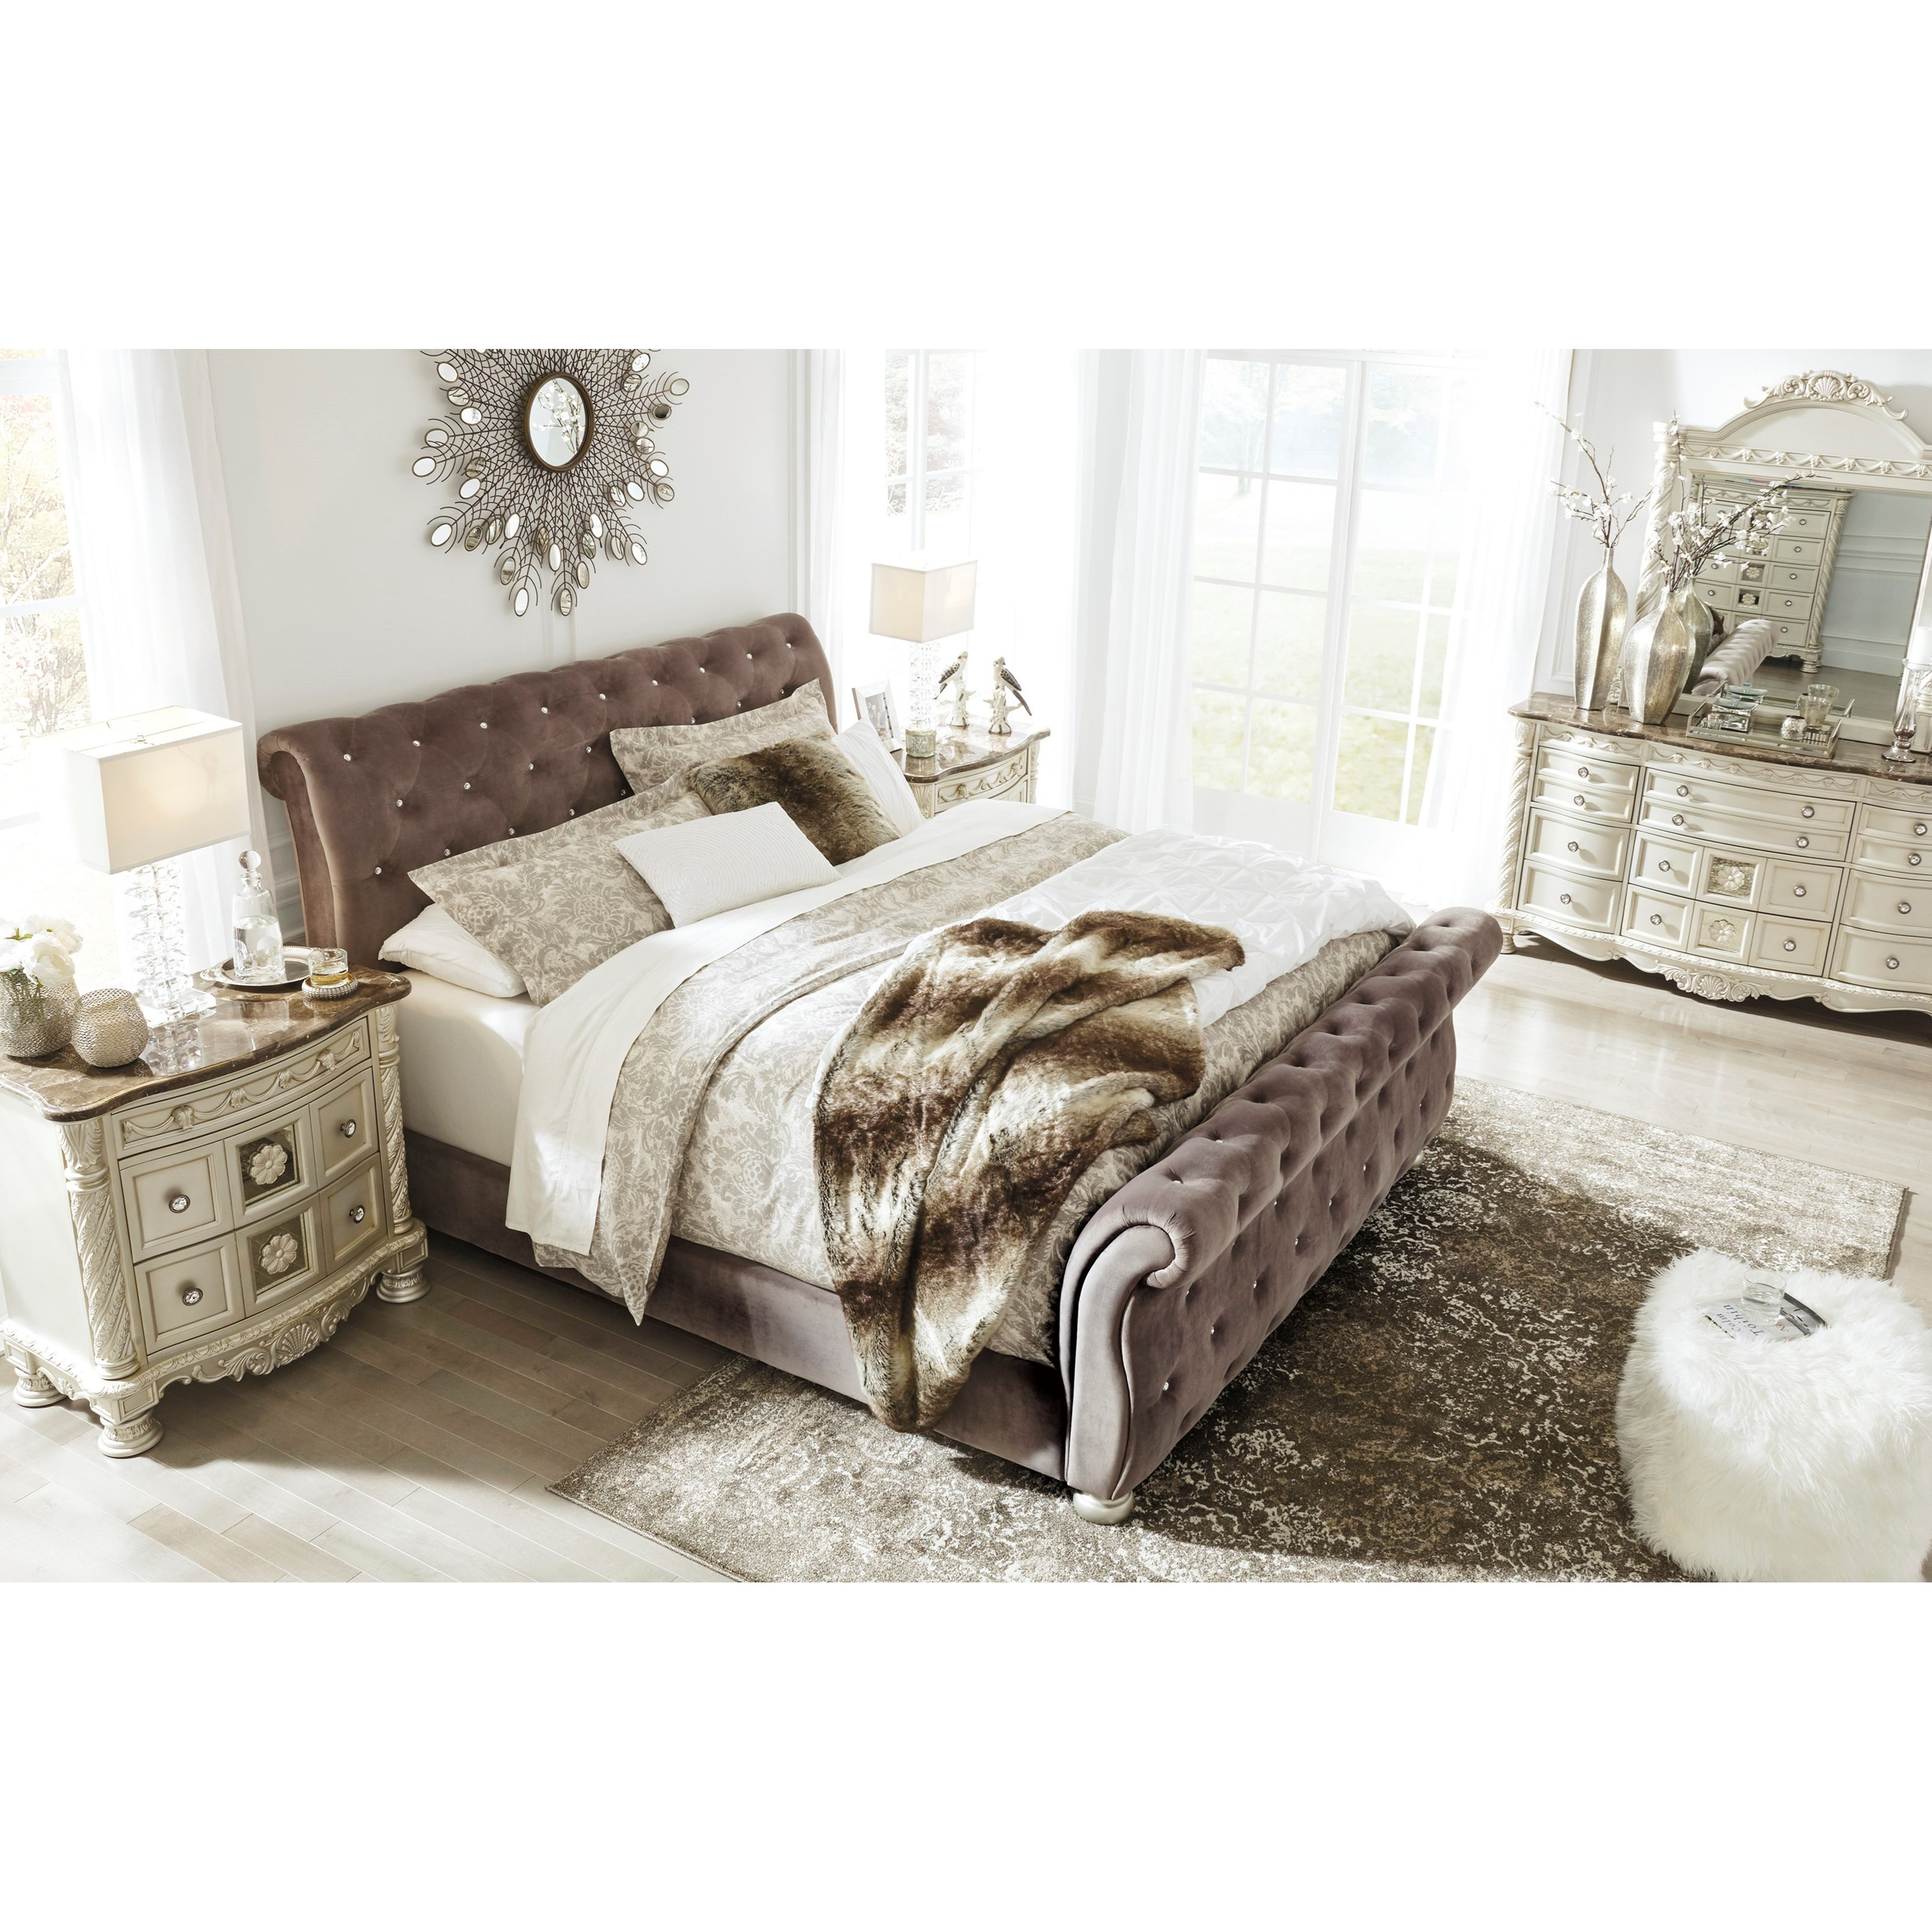 Signature design by ashley cassimore queen upholstered sleigh bed with faux crystal tufting for Upholstered sleigh bedroom set